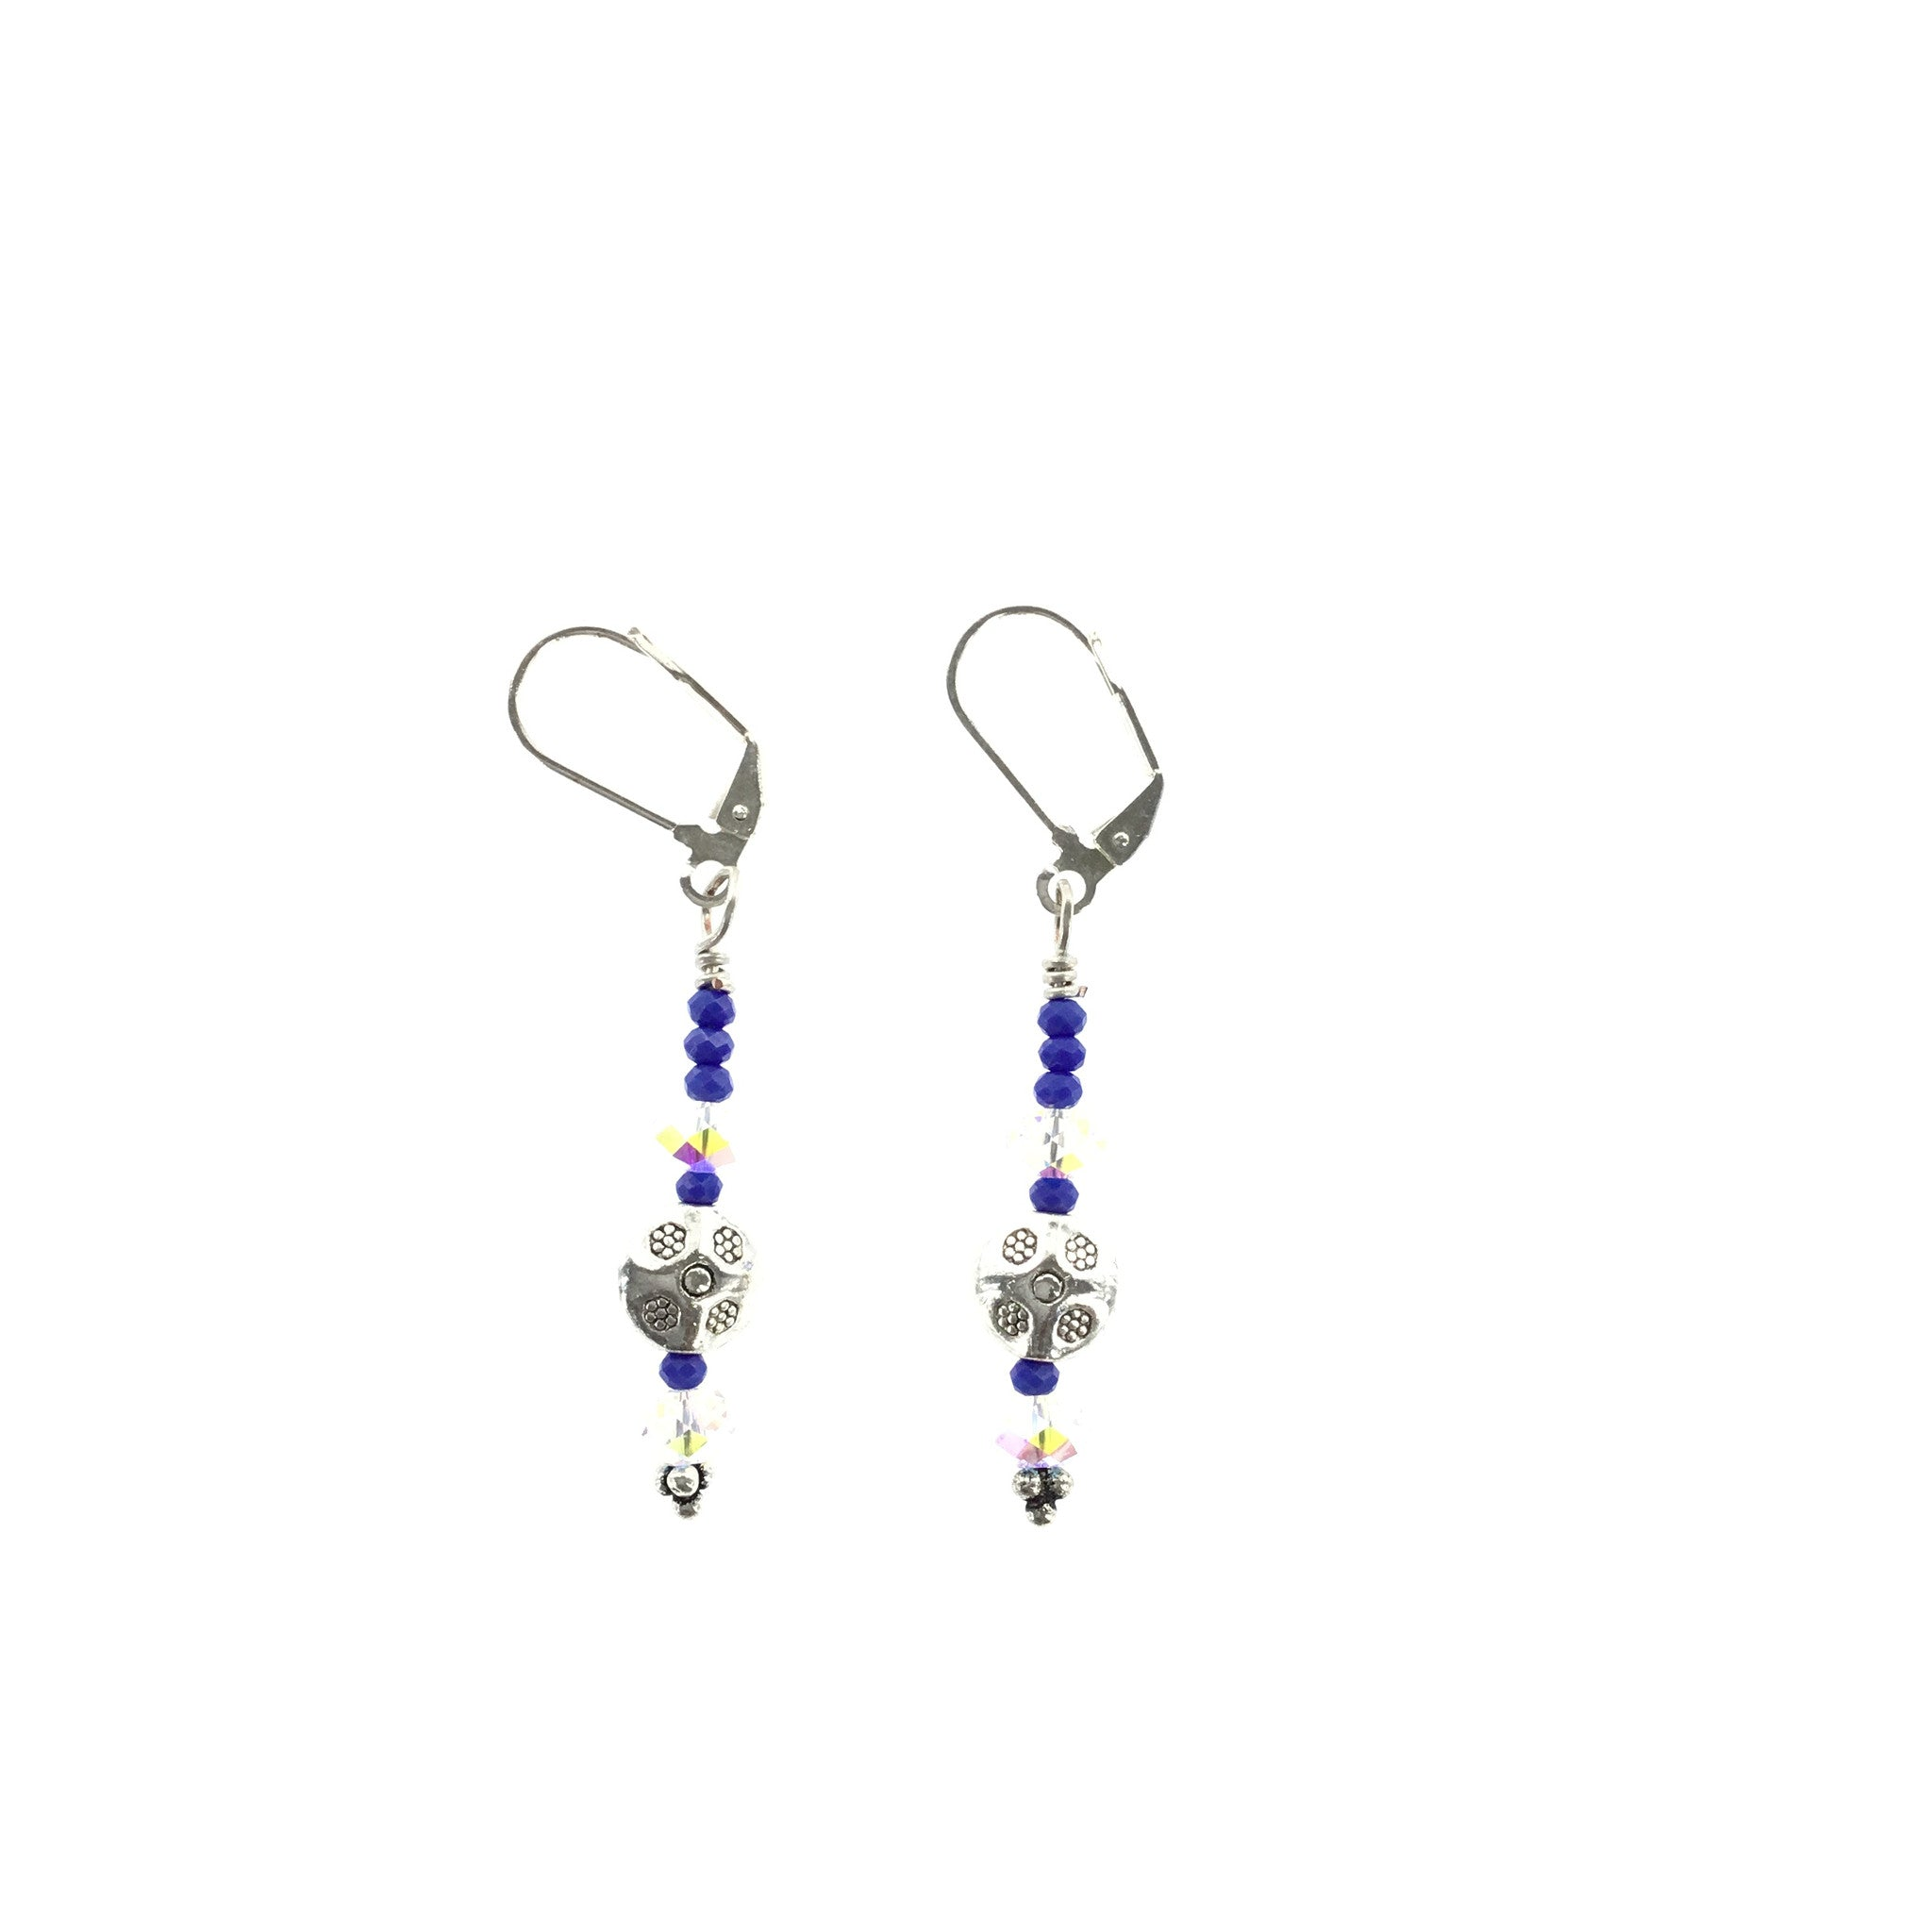 Violet and White Swarovski Drop Earring - Real Chic Boutique  - 2